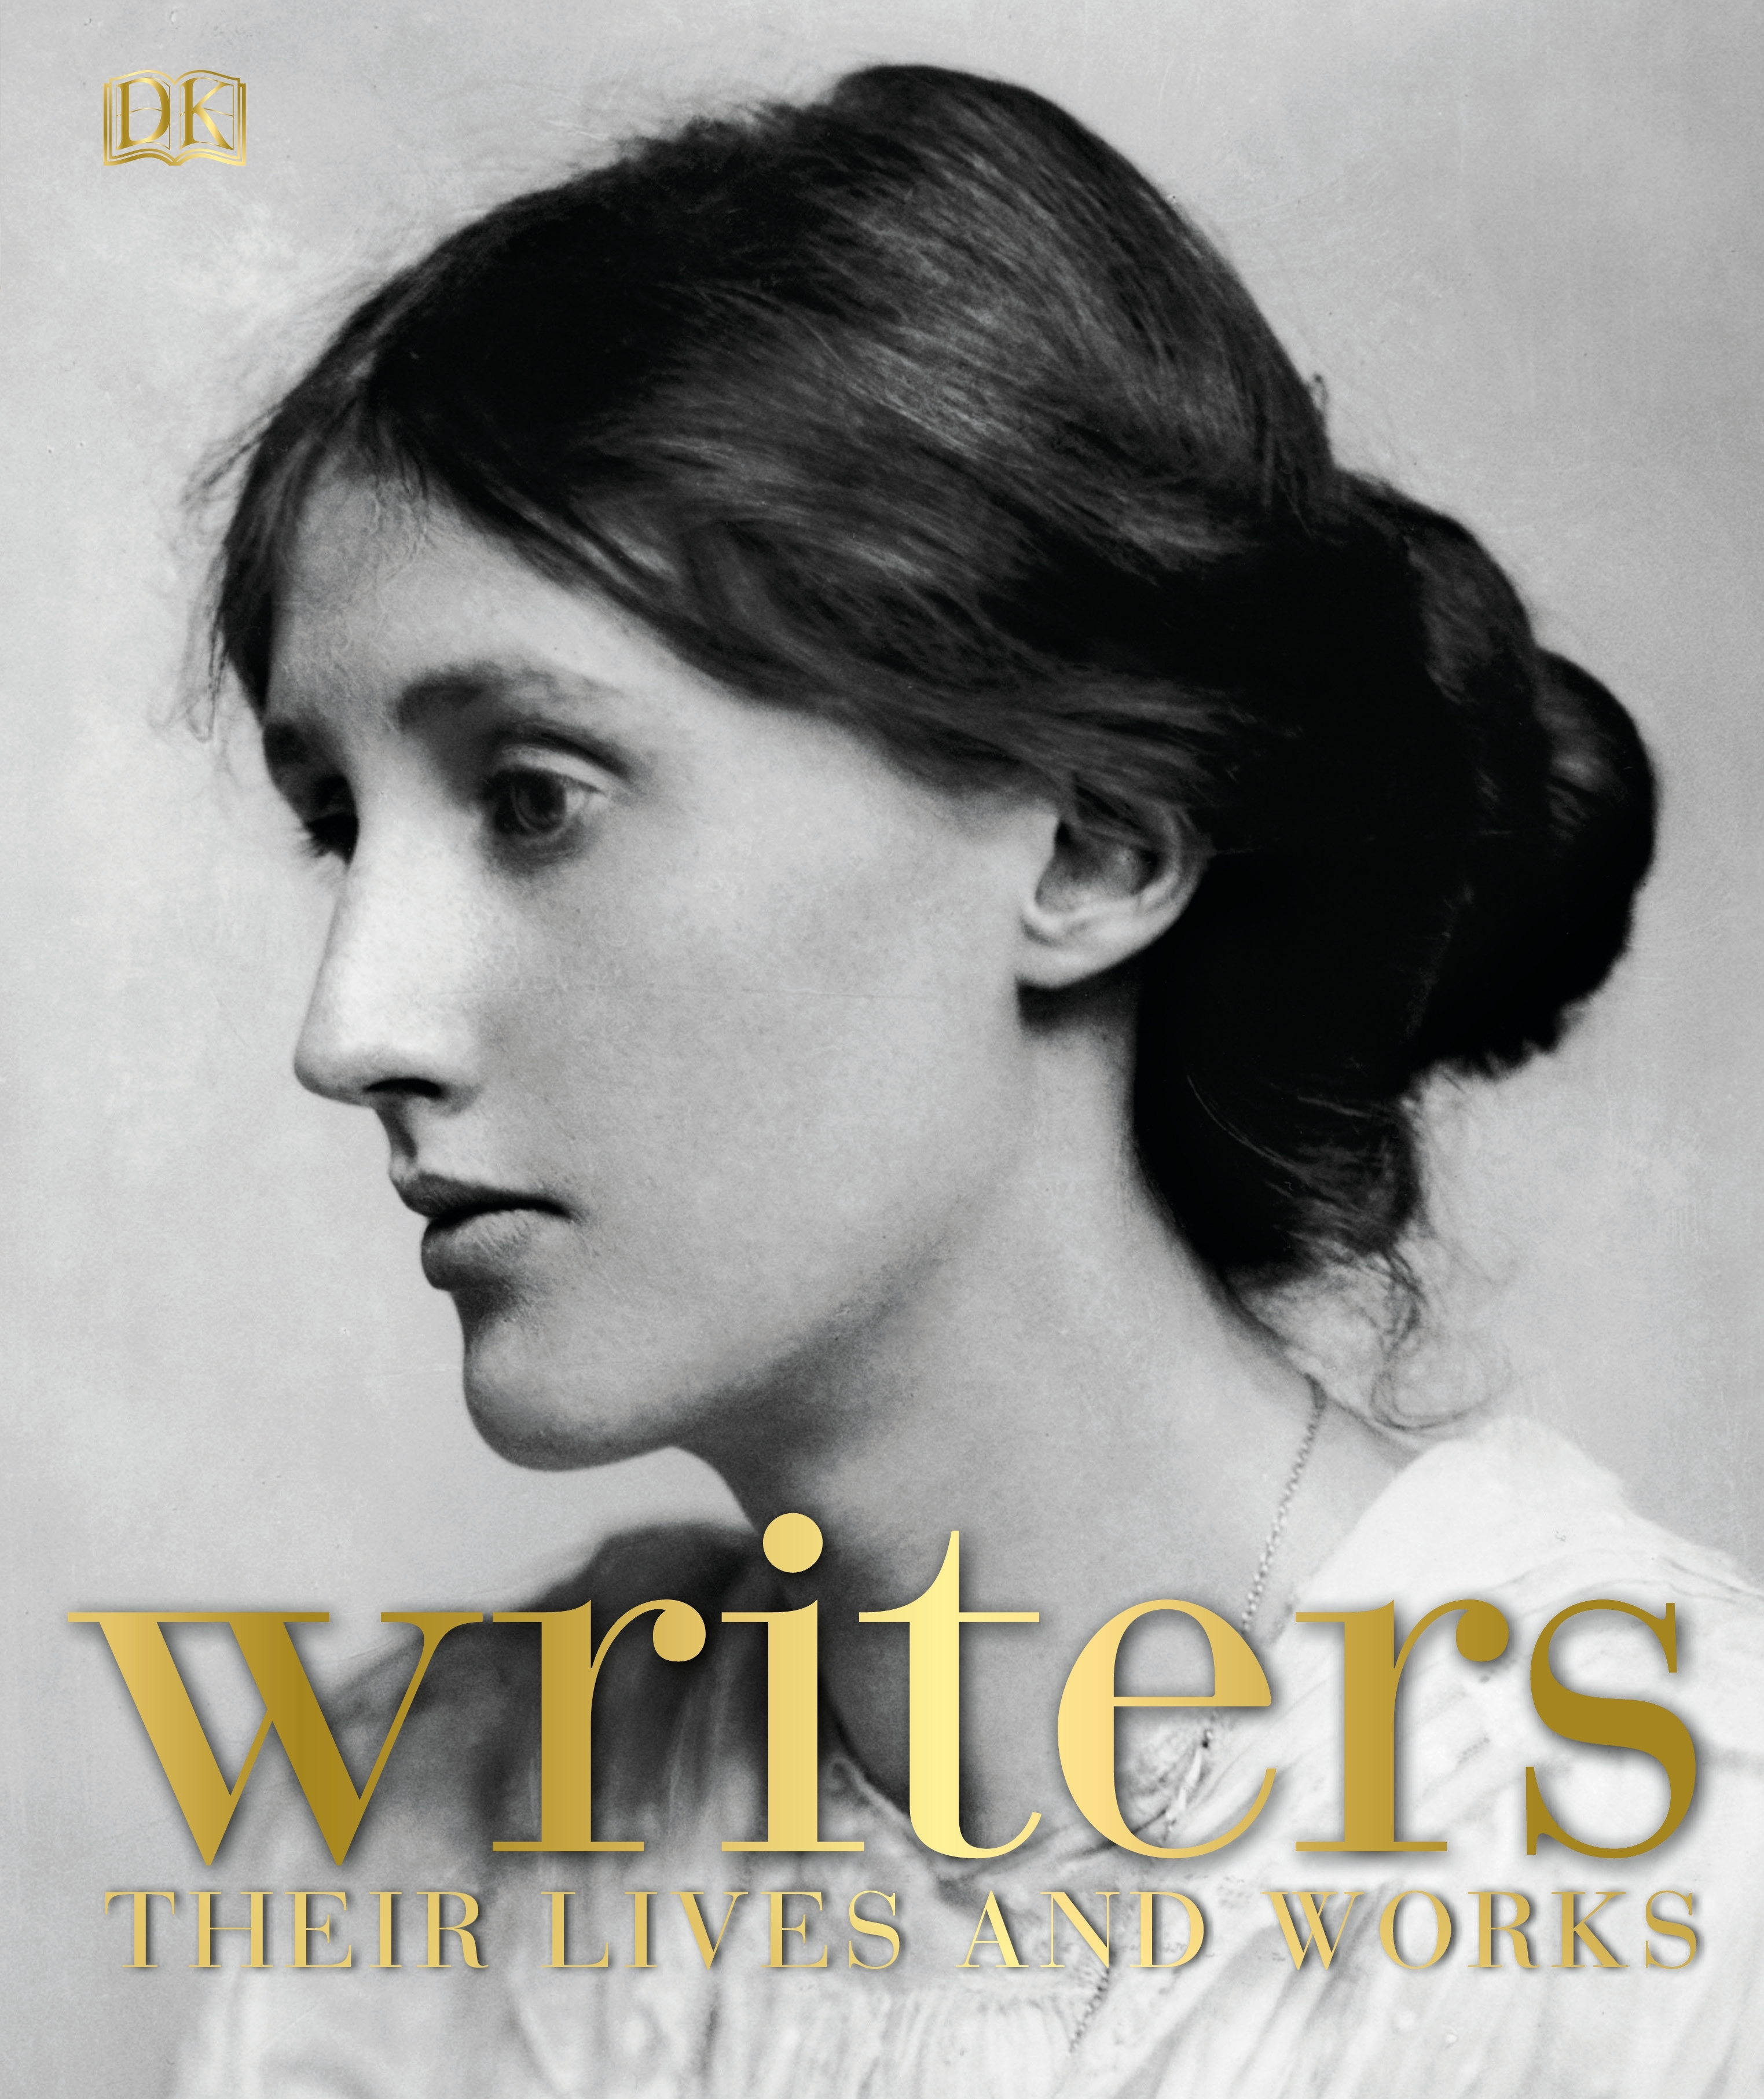 Writers: Their Lives and Works (Dk) by DK, ISBN: 9780241301944